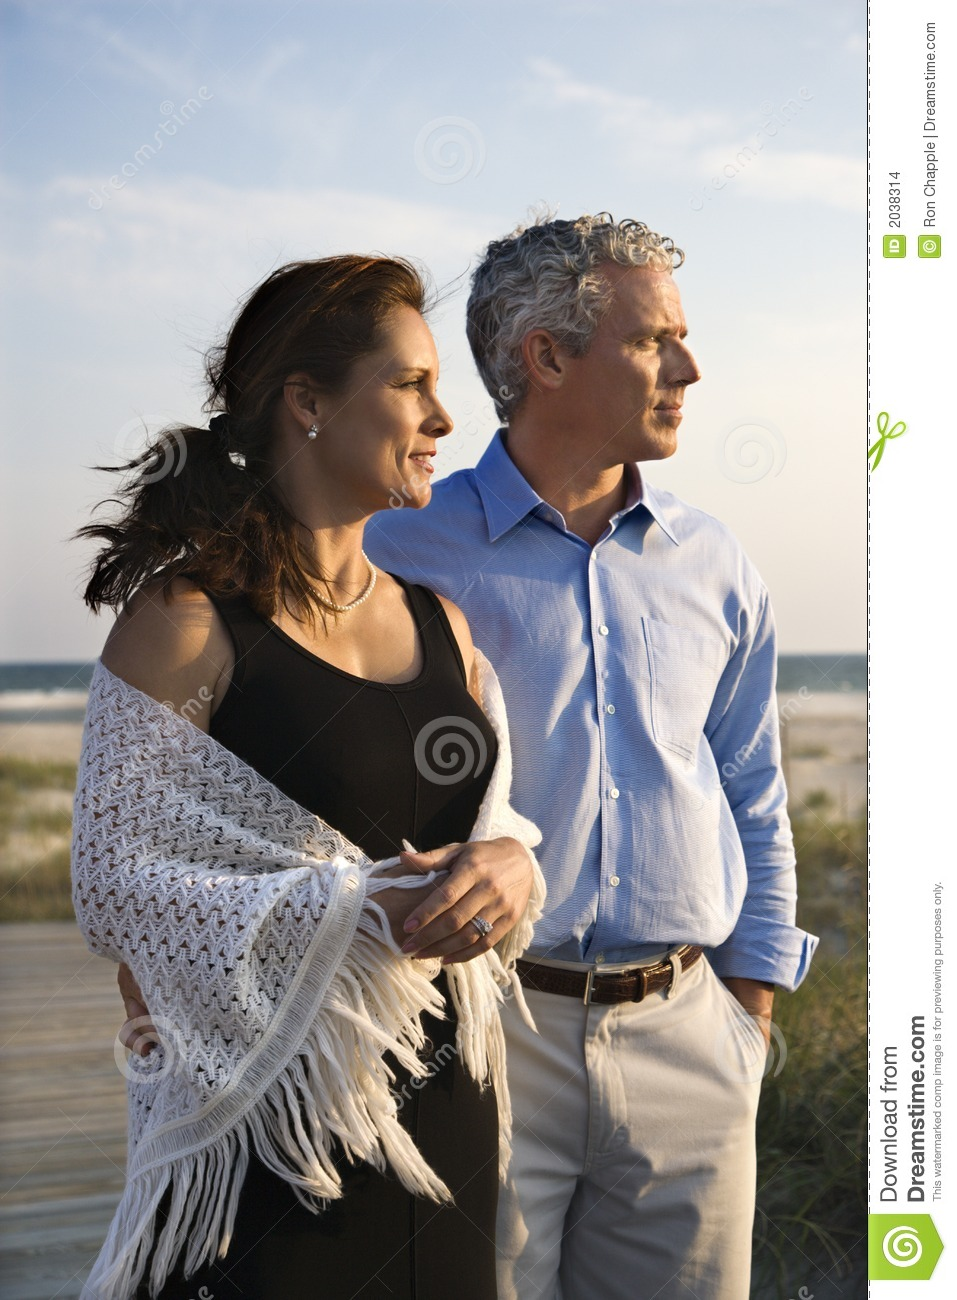 Couple at beach.